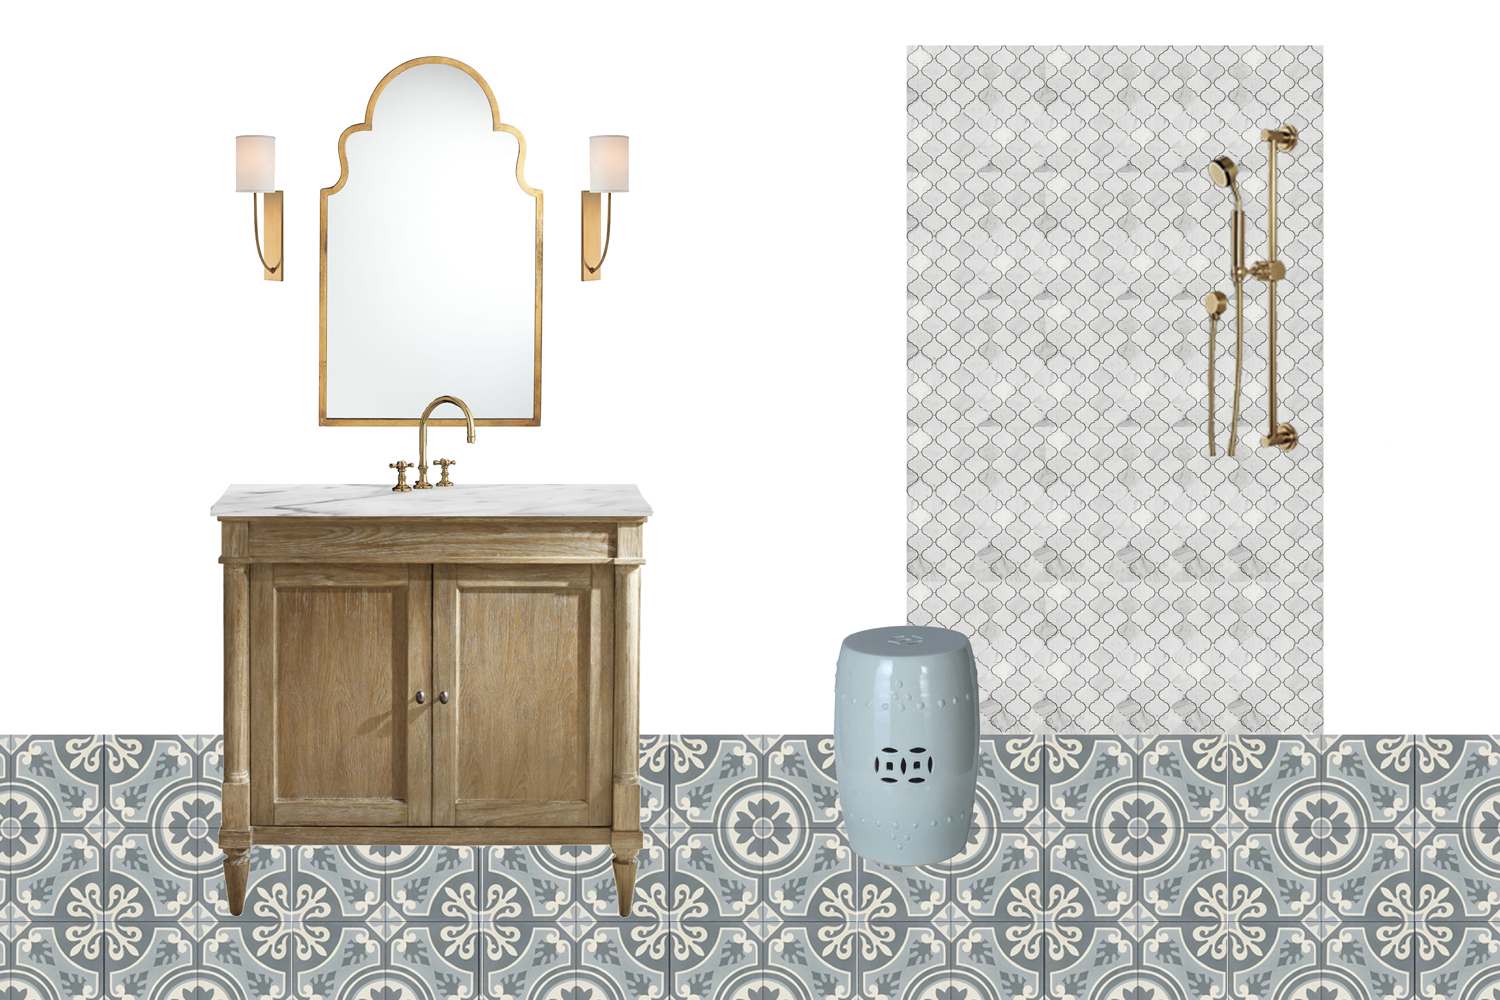 For the guest bathroom, they wanted to incorporate cement tile. The wife loves the colorway of this pattern, and the husband said it reminds him of tiles he's seen in Damascus. He's from Syria, so they consider this bathroom a nod to his heritage.